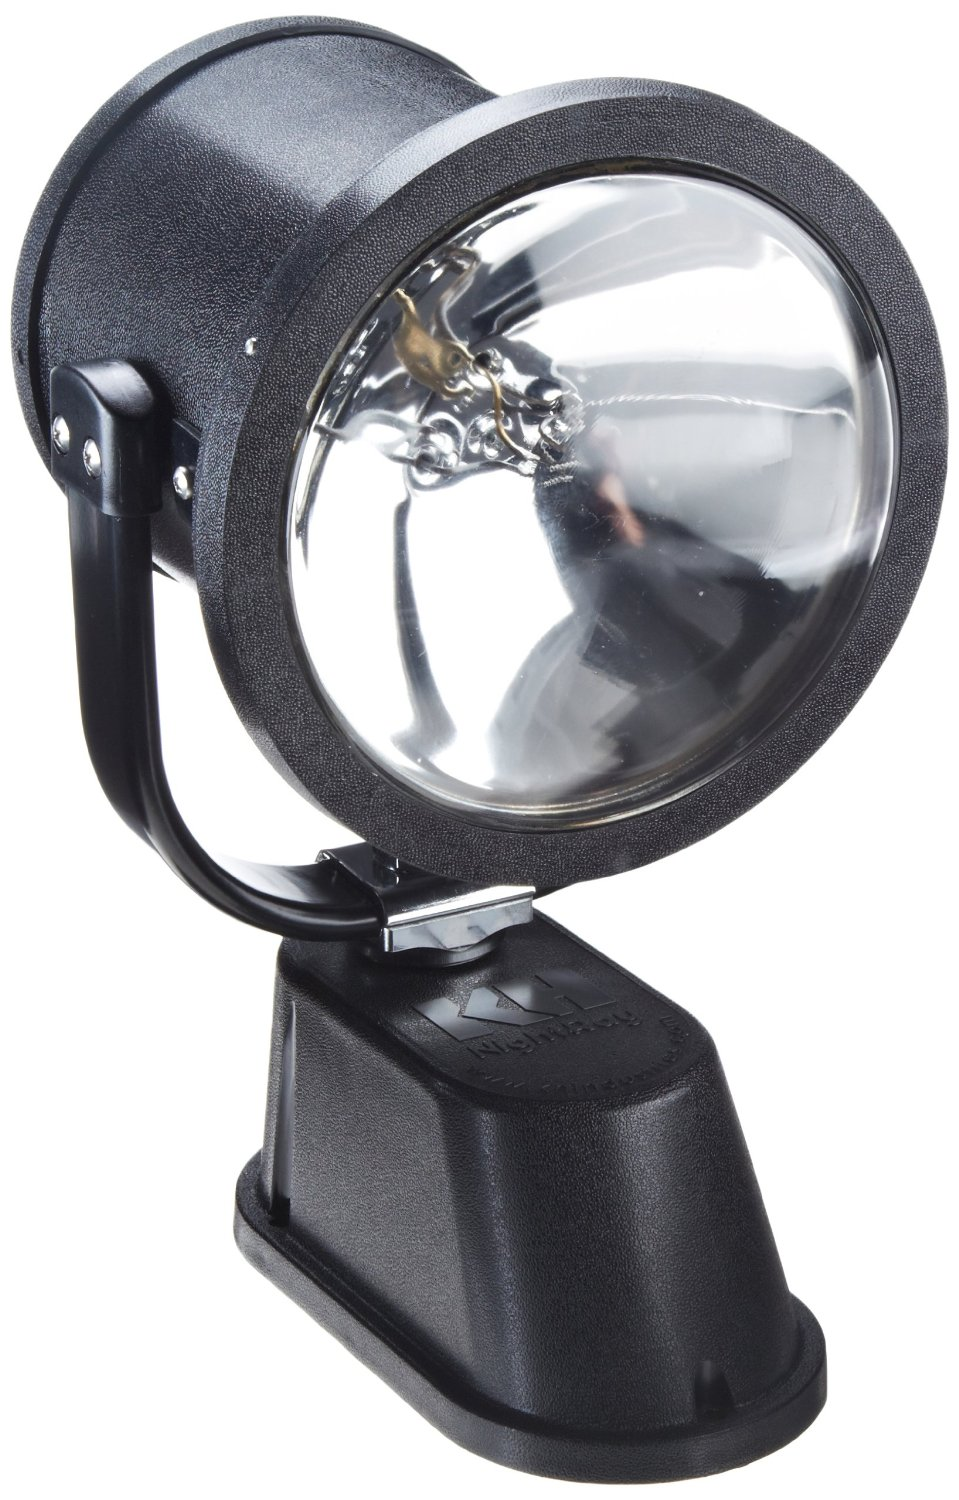 KH Industries 675-20 Vehicle Mounted NightRay Spotlight with Hardwired Dash Control Panel, 50000cp Floodlight/200000cp Spotlight